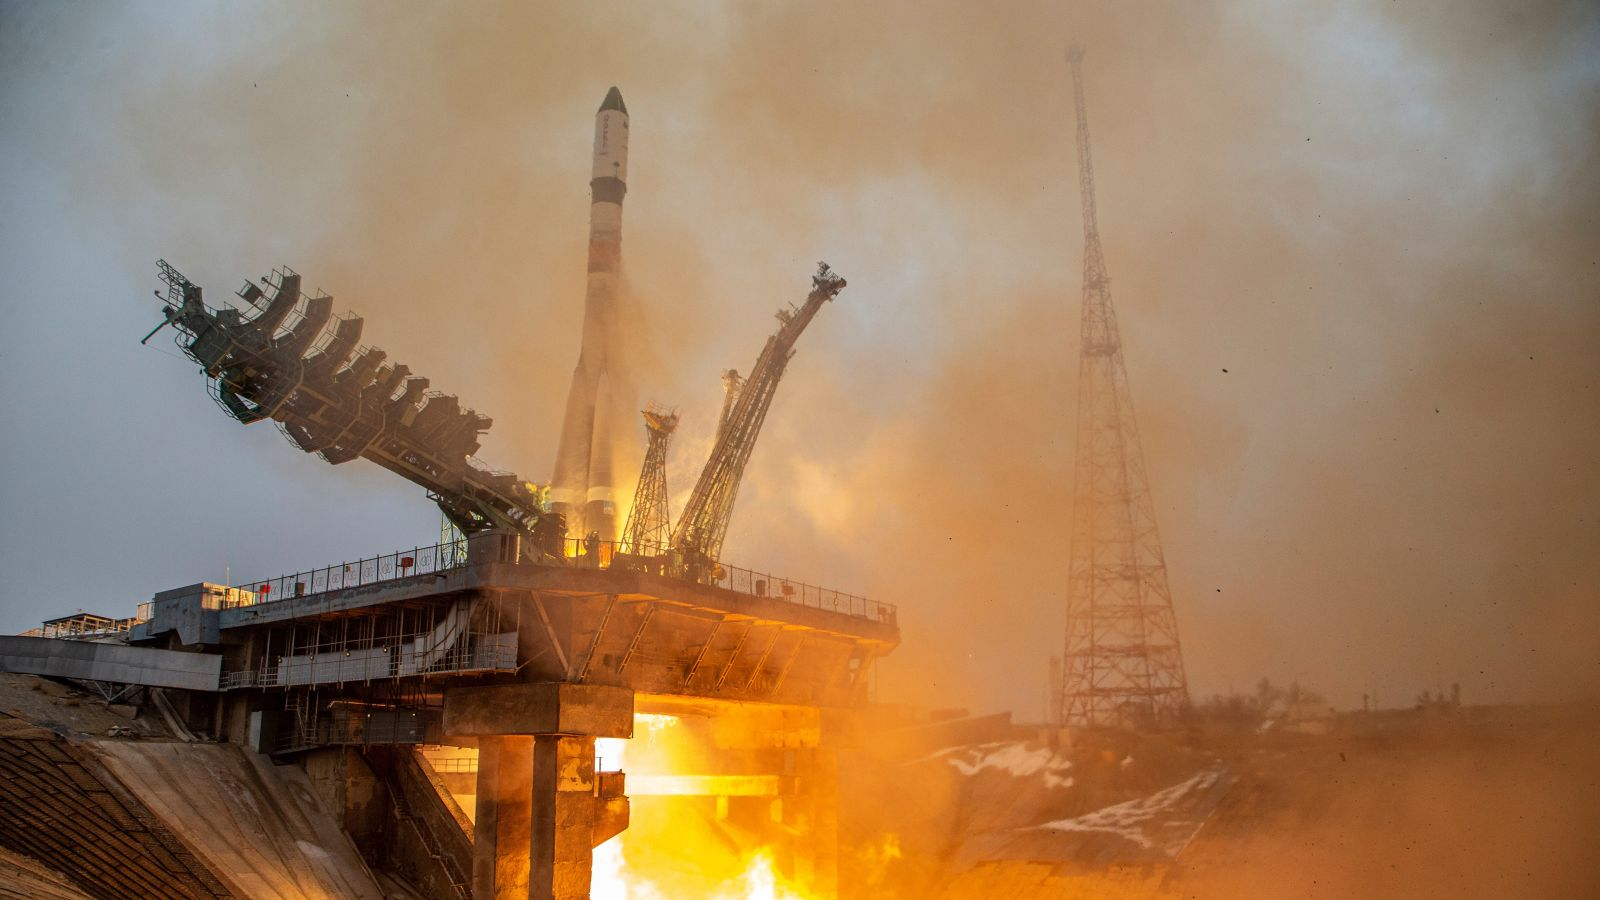 Progress MS-16 is launched atop a Soyuz 2.1a rocket from Baikonur Cosmodrome in Kazakhstan. Credit: Roscosmos